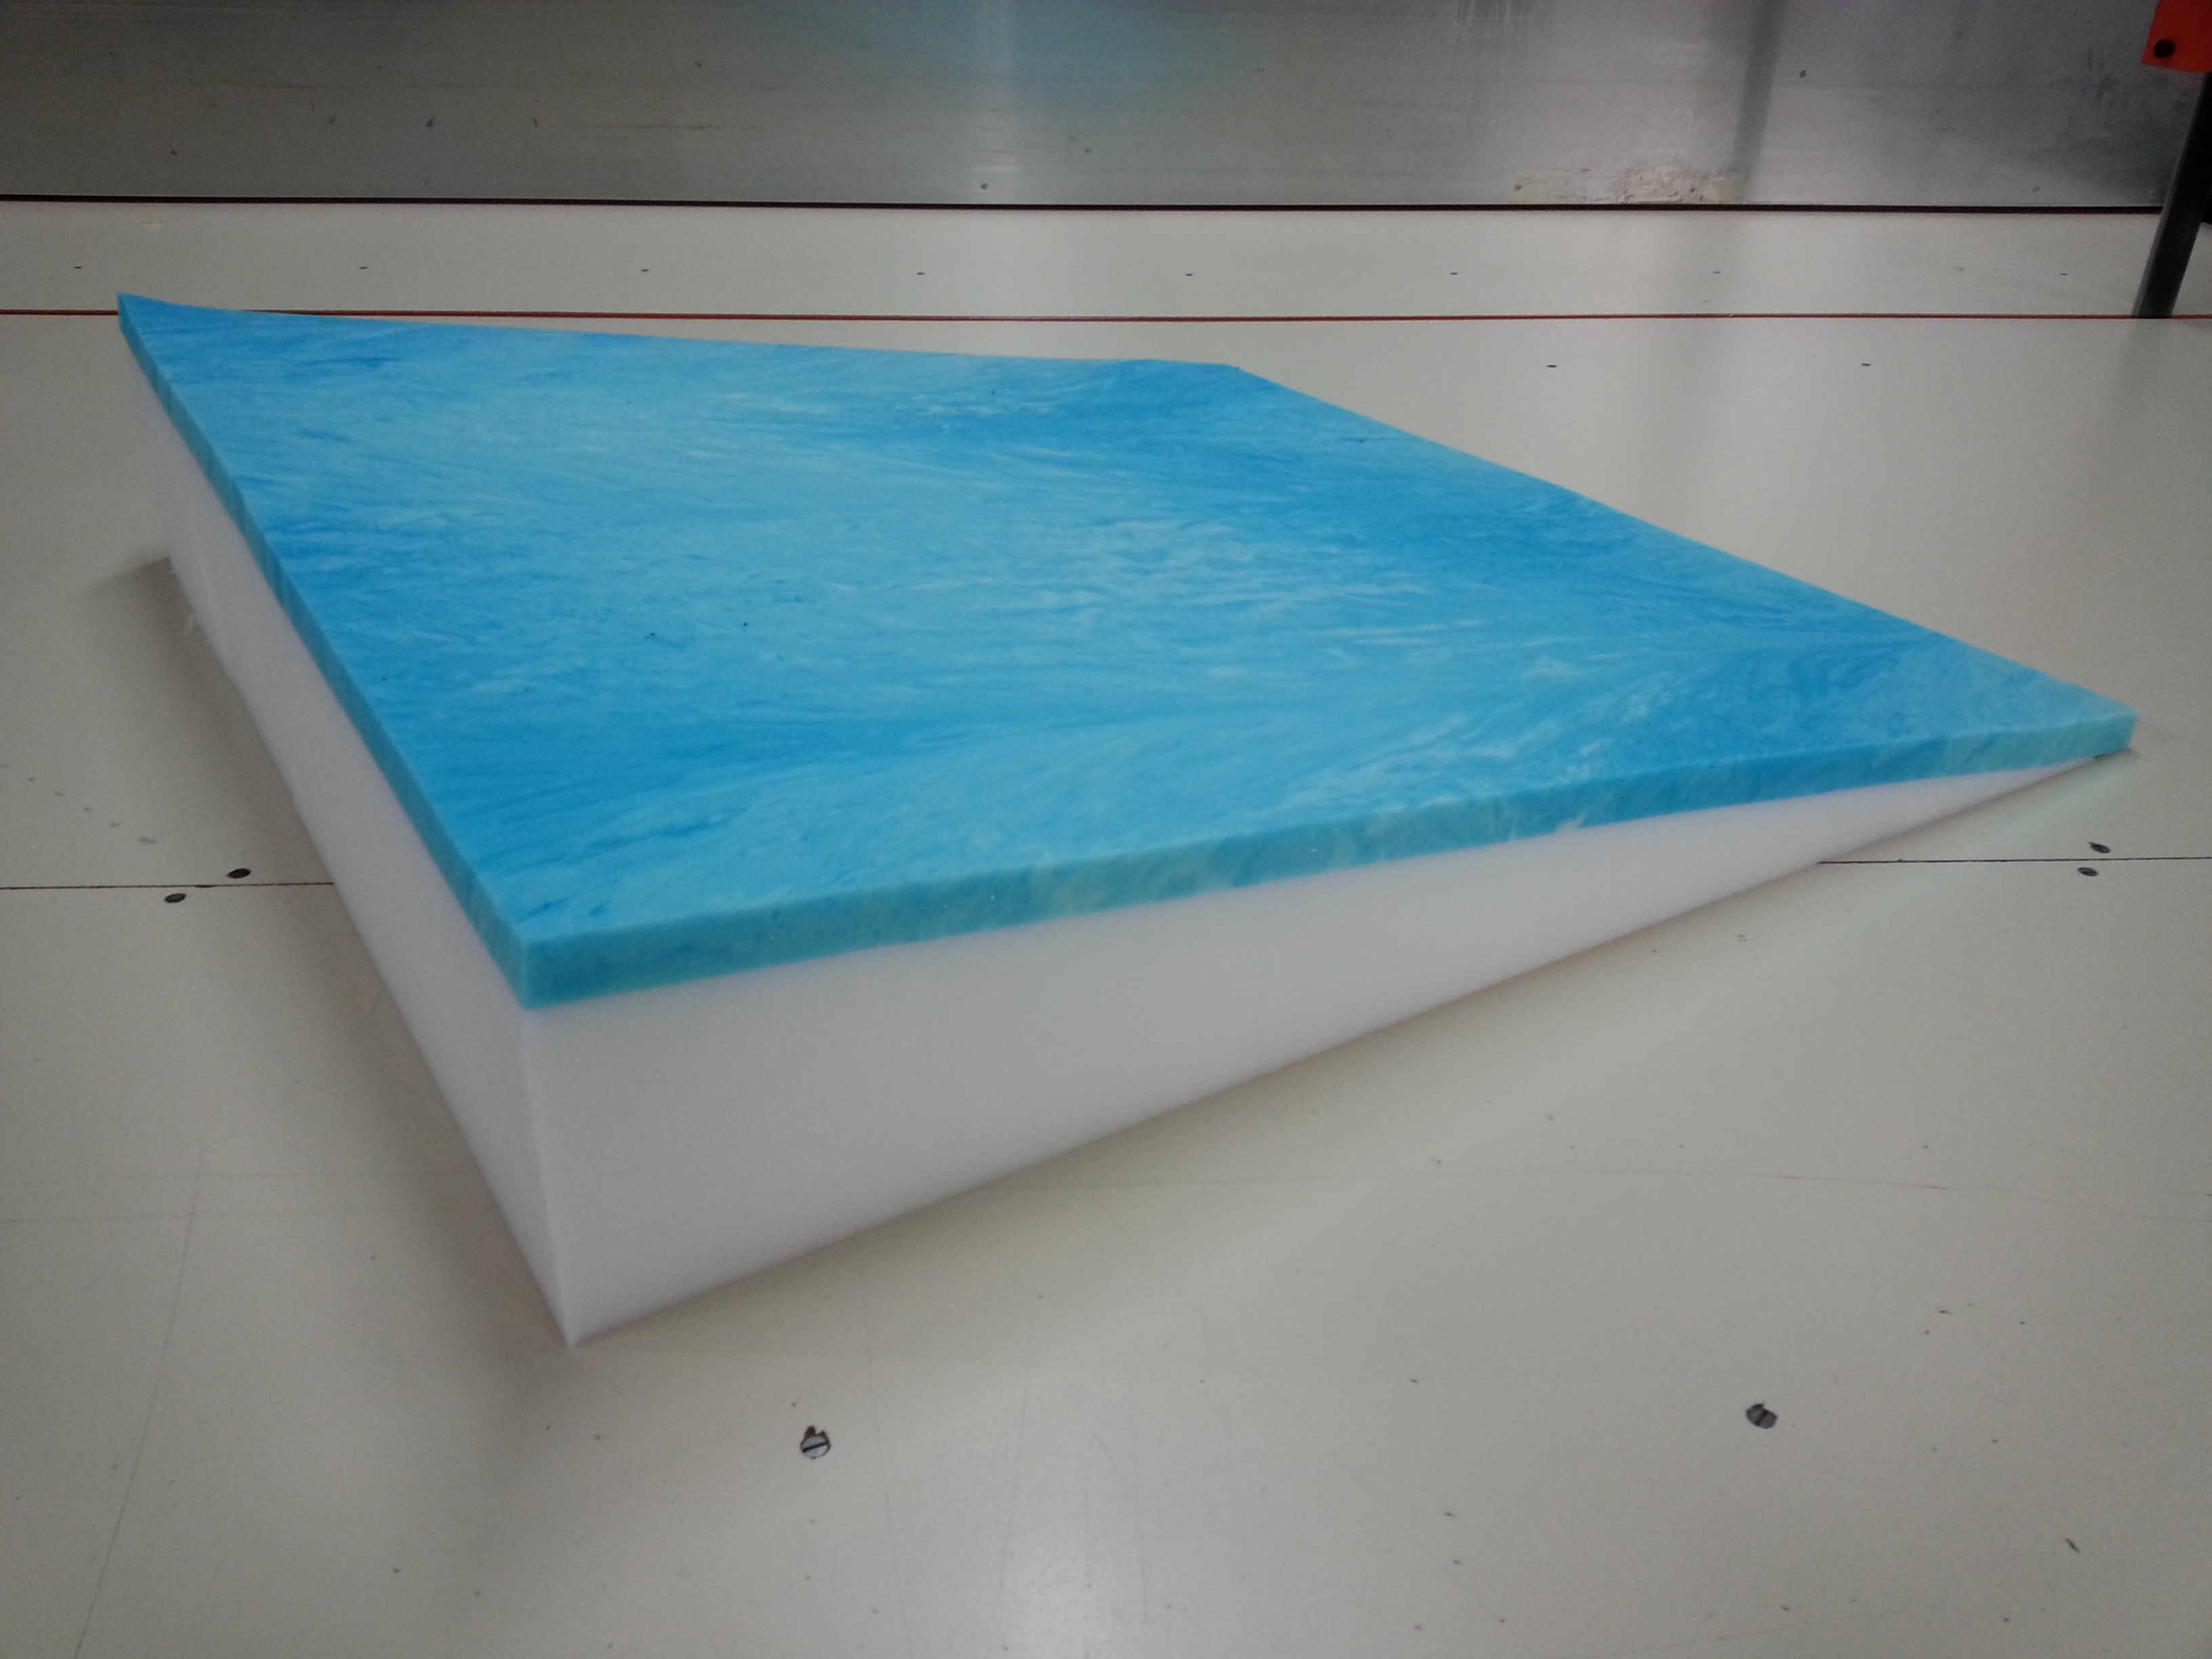 made of foam with removable zipper equipped cover foam wedge can be put on top of any existing surface